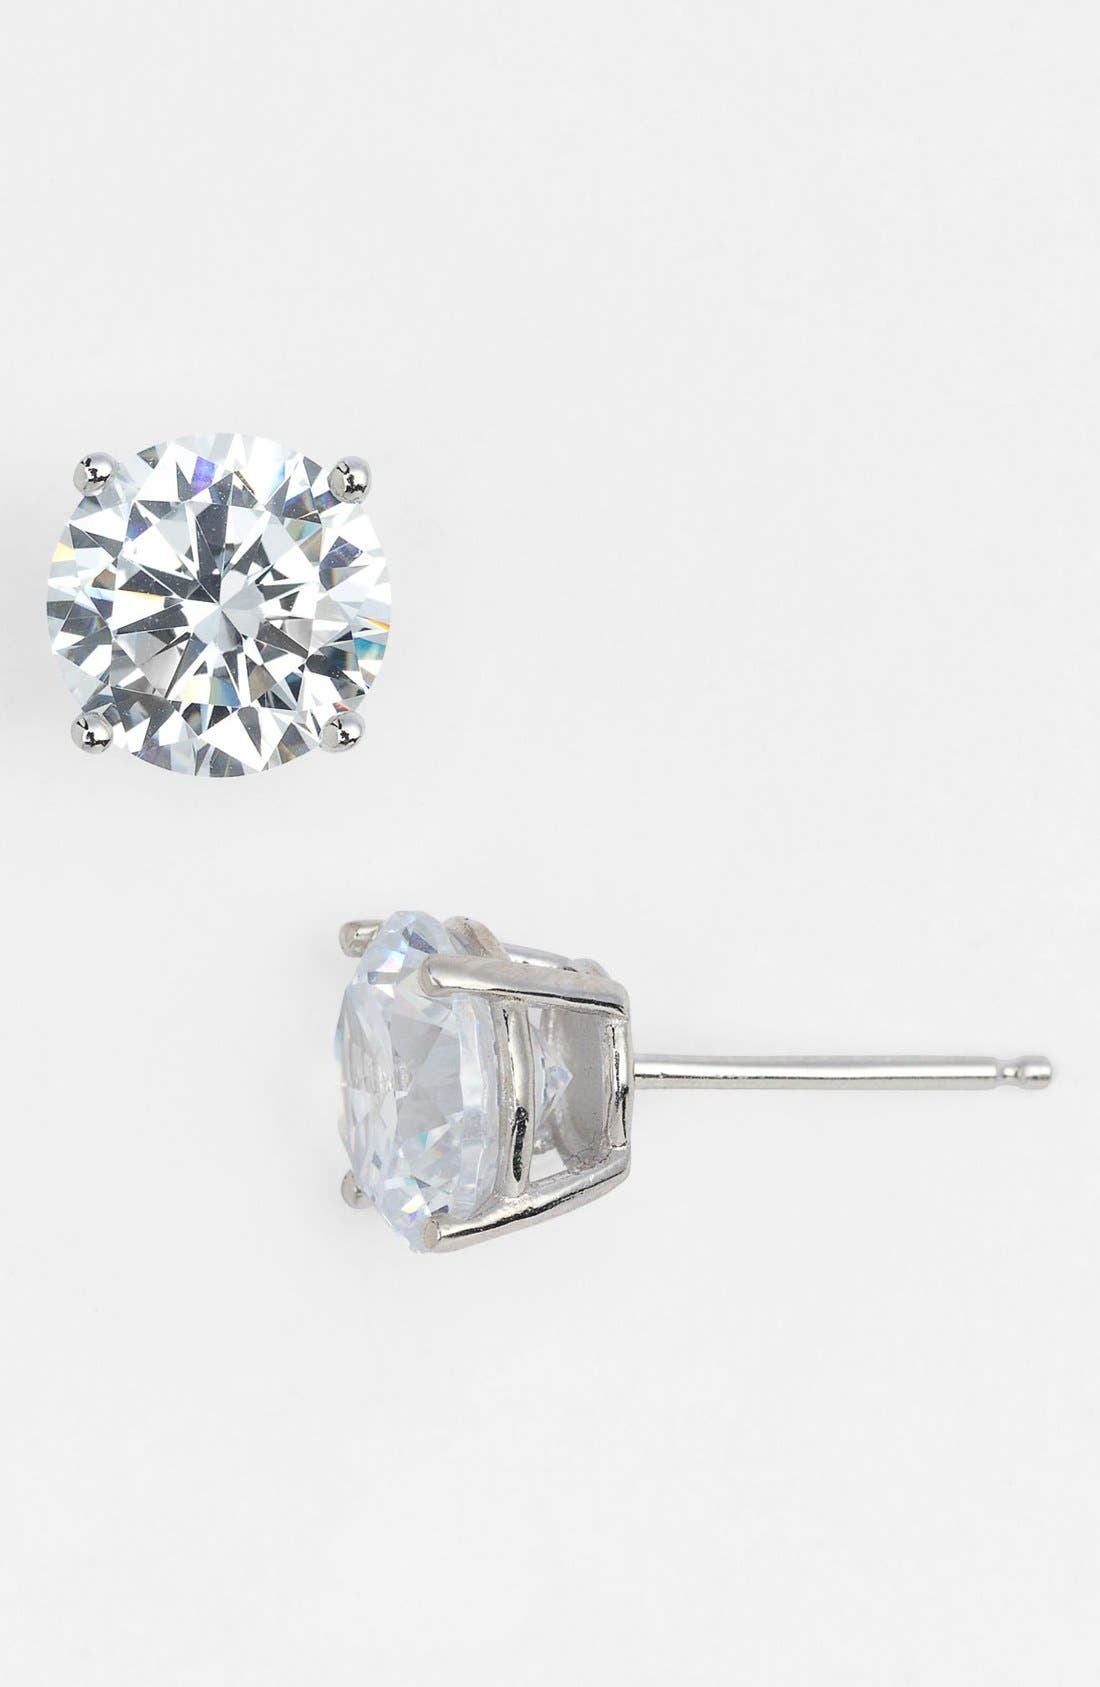 Main Image - Nordstrom 4ct tw Cubic Zirconia Stud Earrings (Special Purchase)